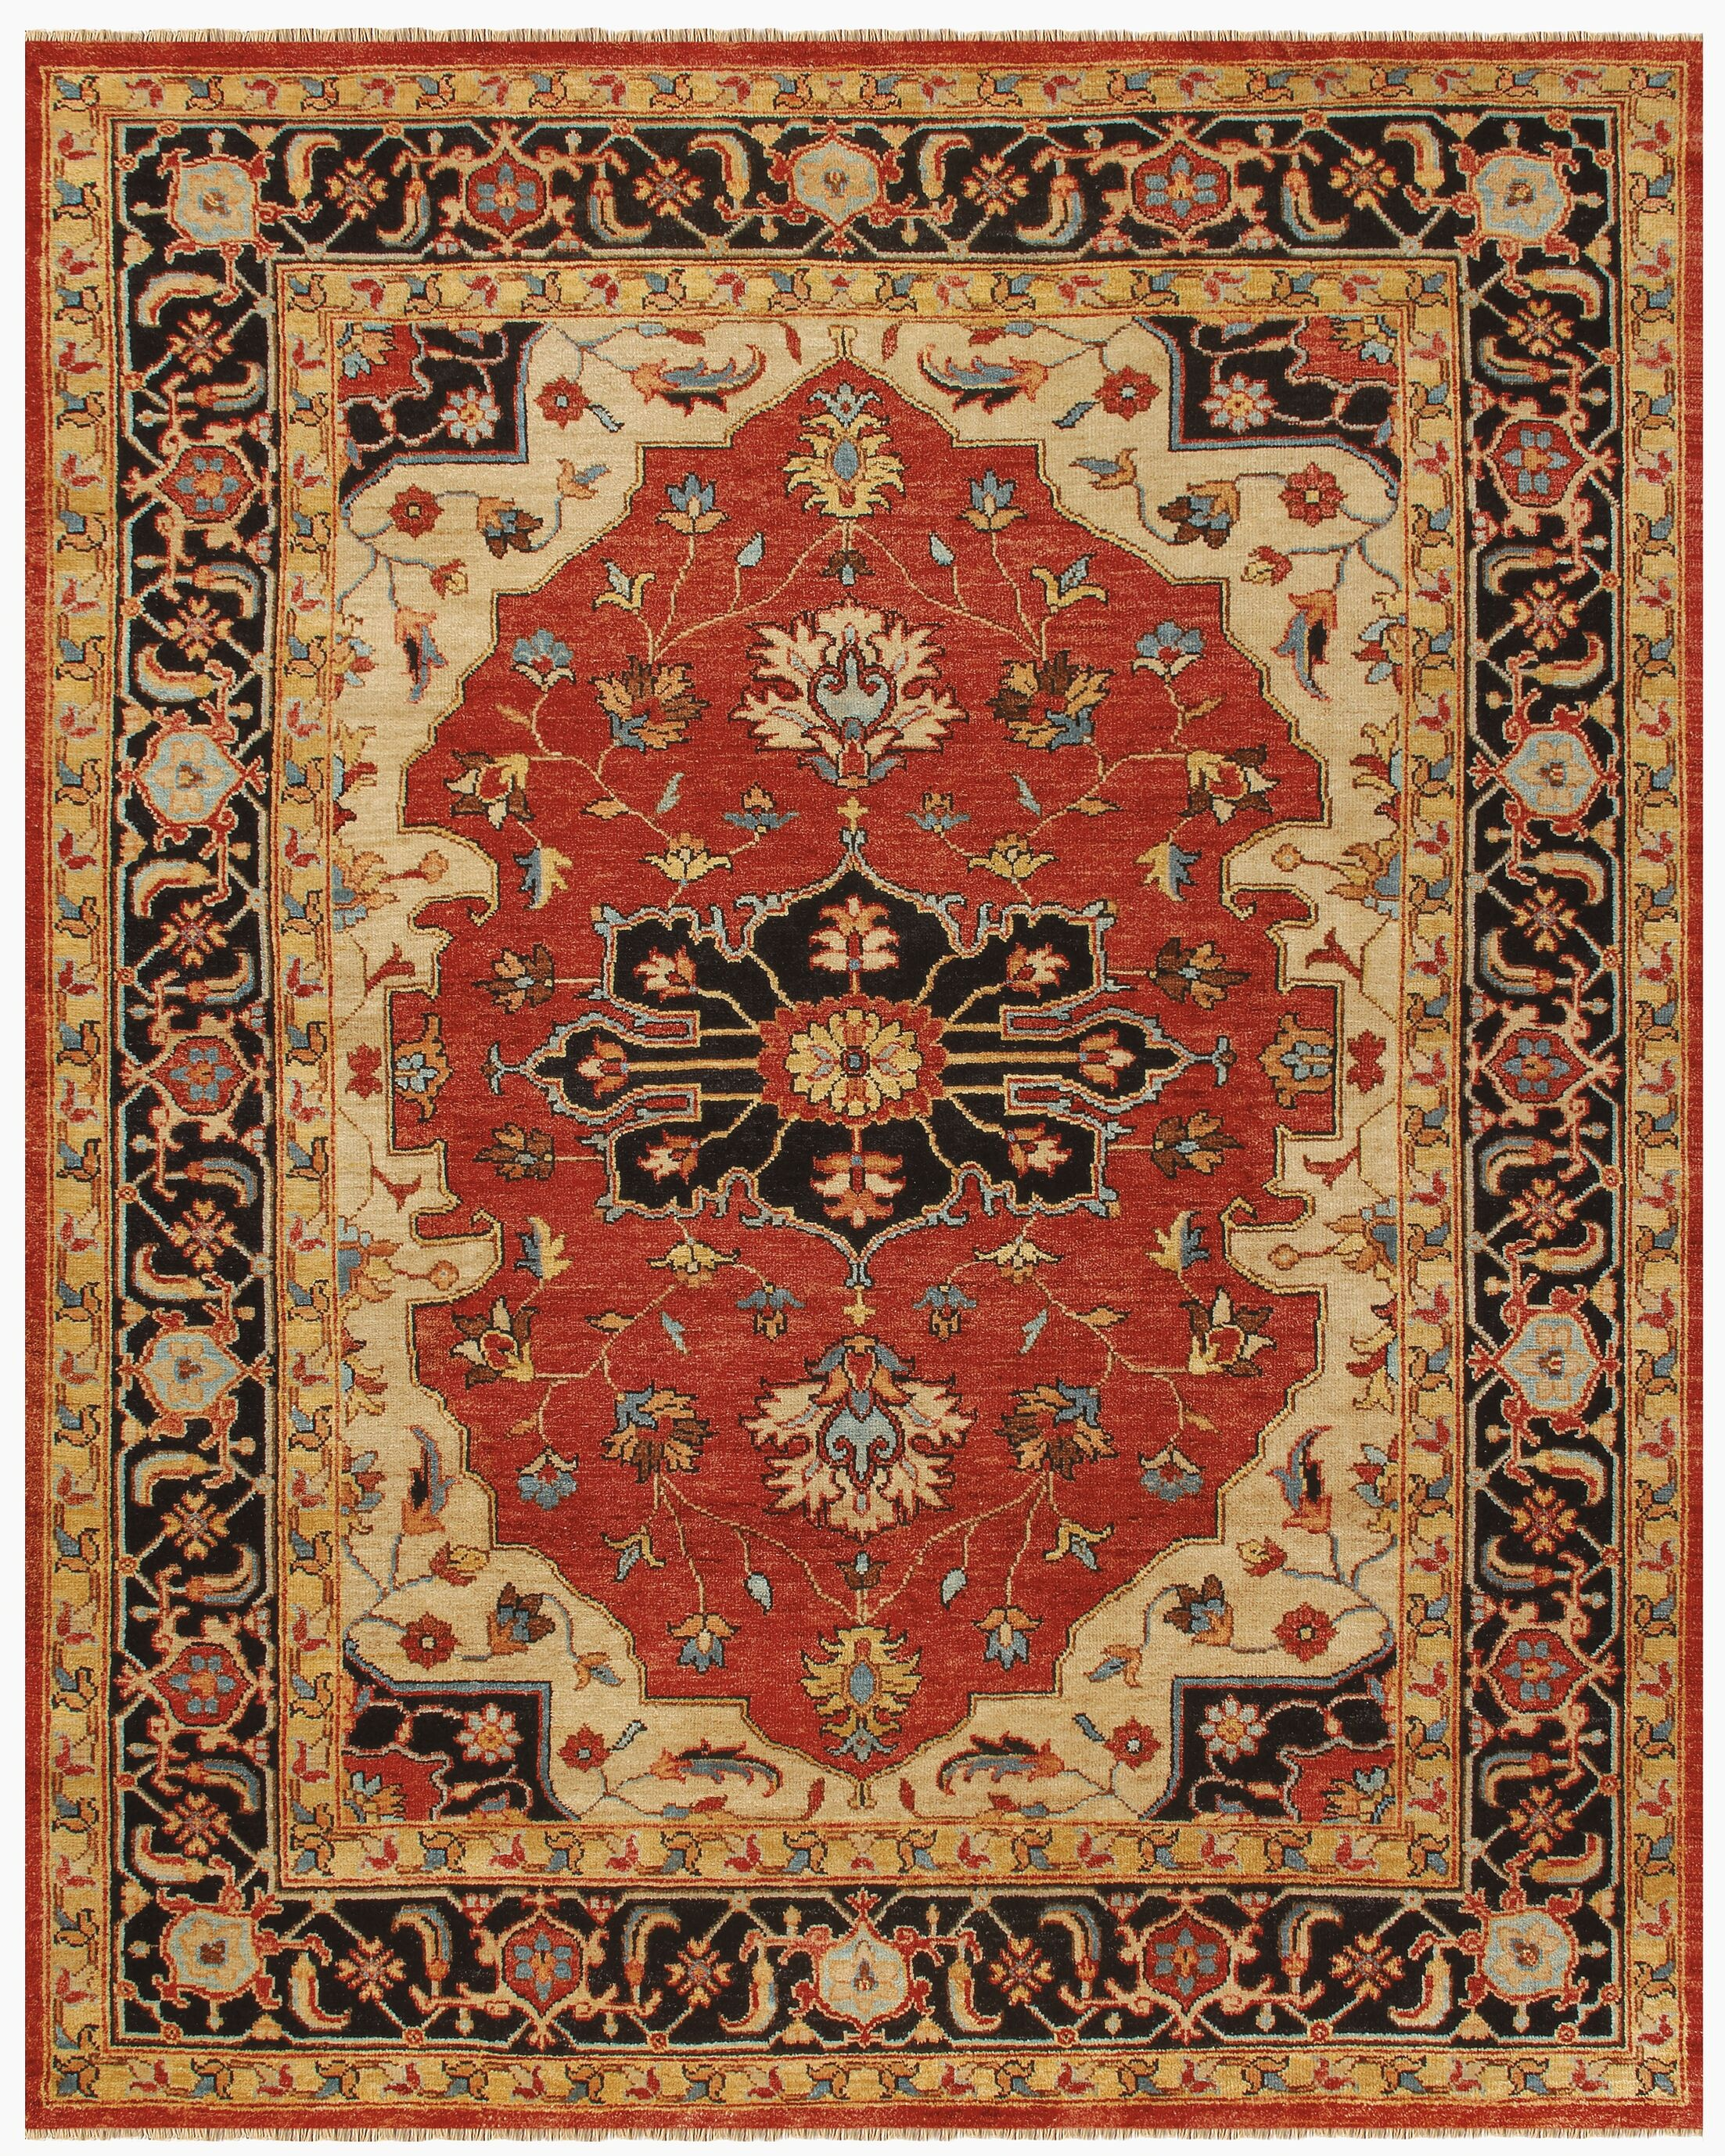 Castine Knotted Wool Red Area Rug Rug Size: Rectangle 2' x 3'